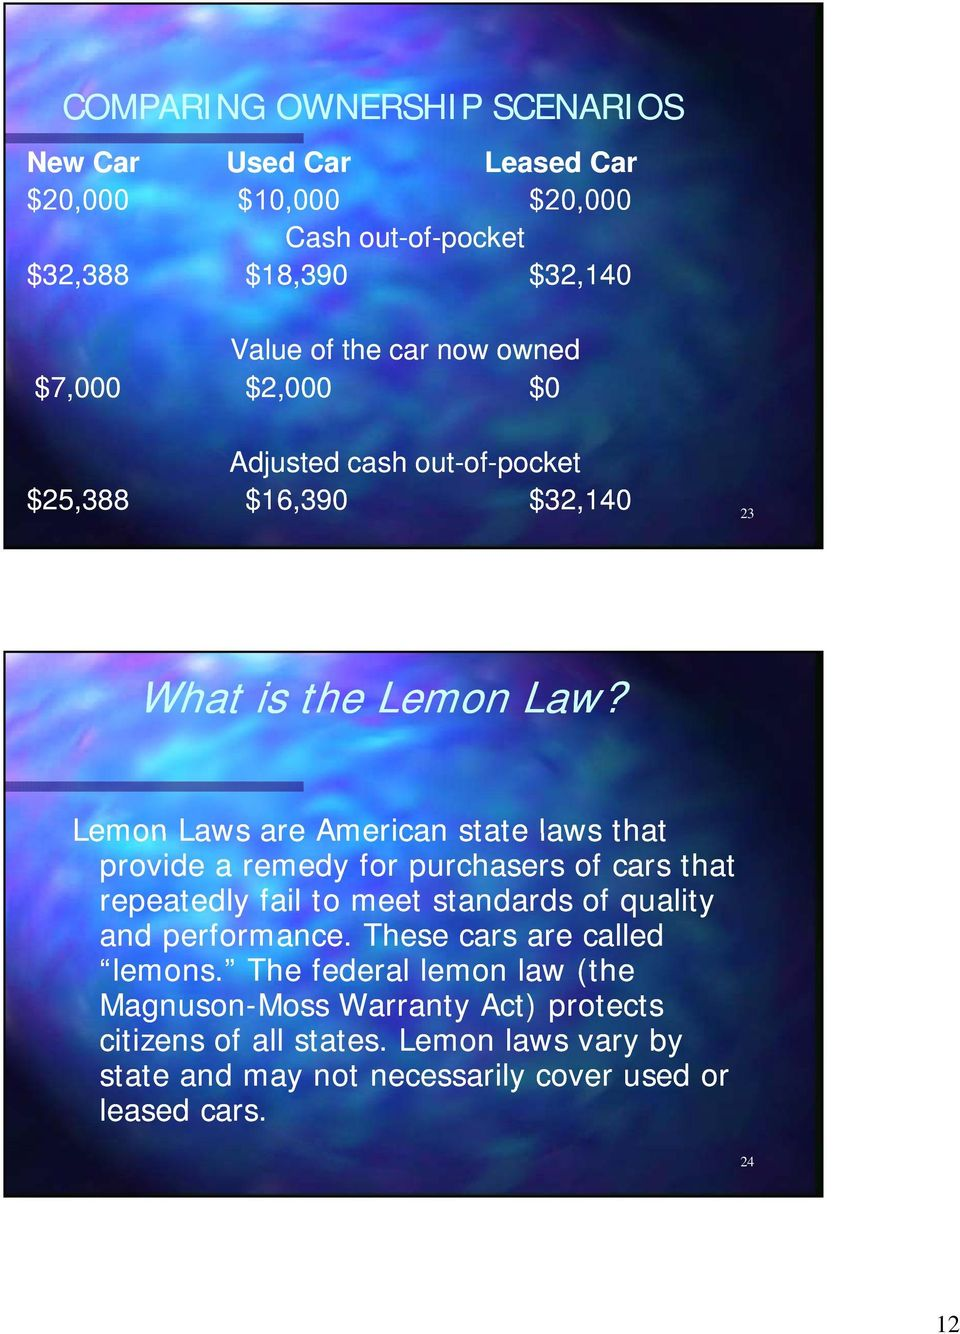 Lemon Laws are American state laws that provide a remedy for purchasers of cars that repeatedly fail to meet standards of quality and performance.